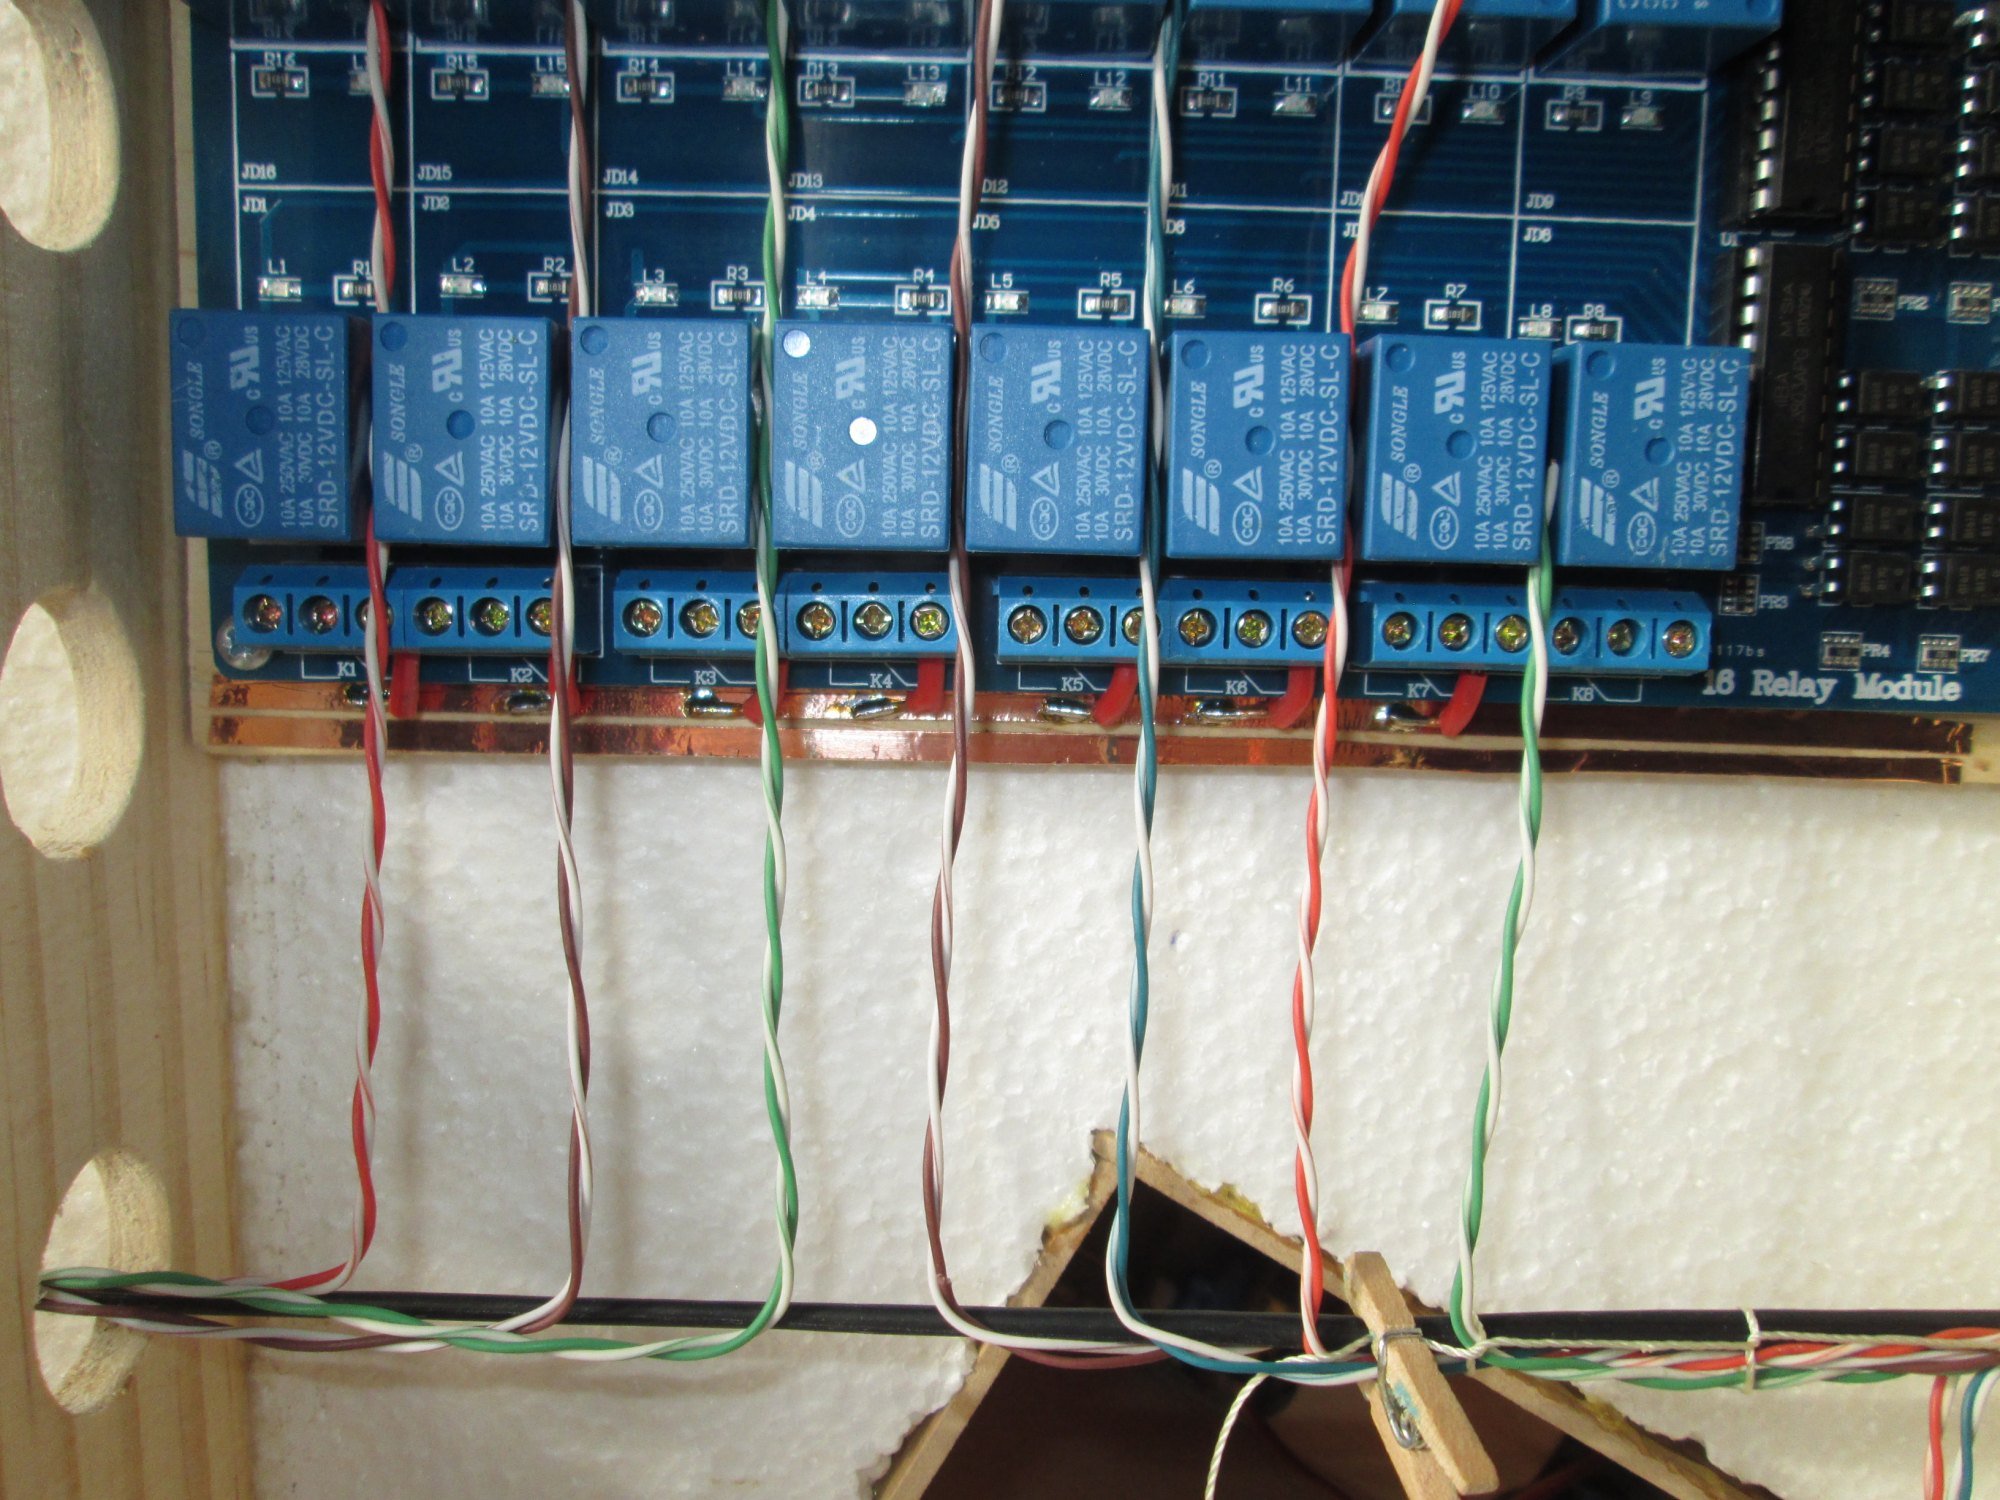 Wiring and lacing - Utrainia on